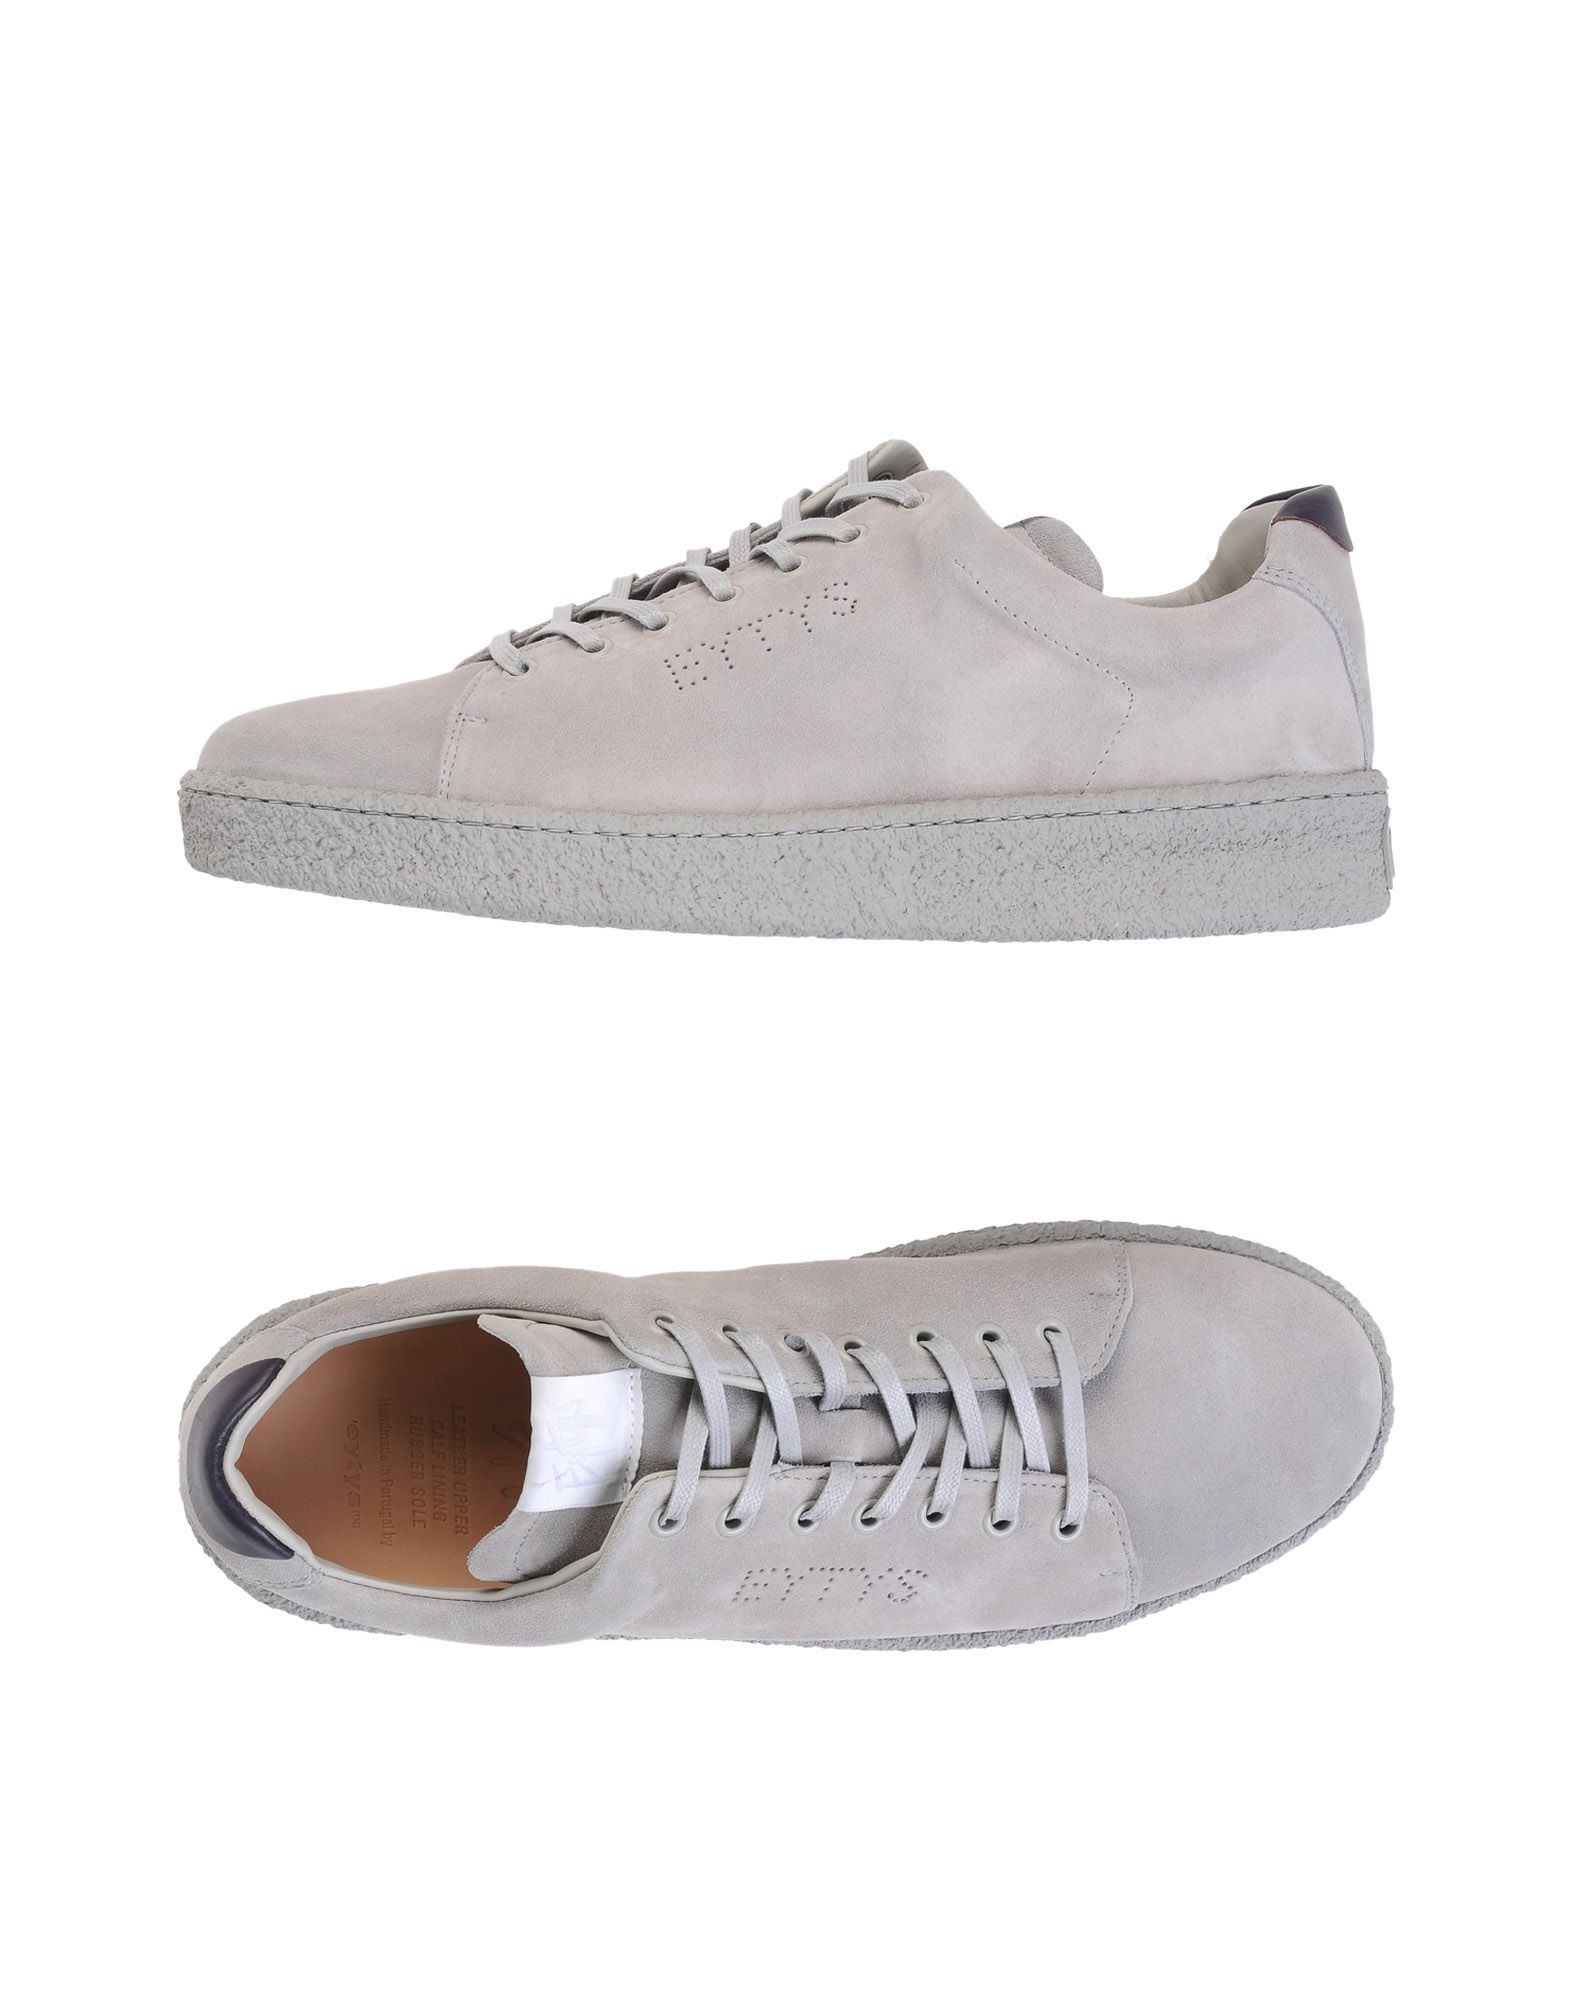 Sneakers Eytys Homme - Sneakers Eytys  Gris clair Super rabais